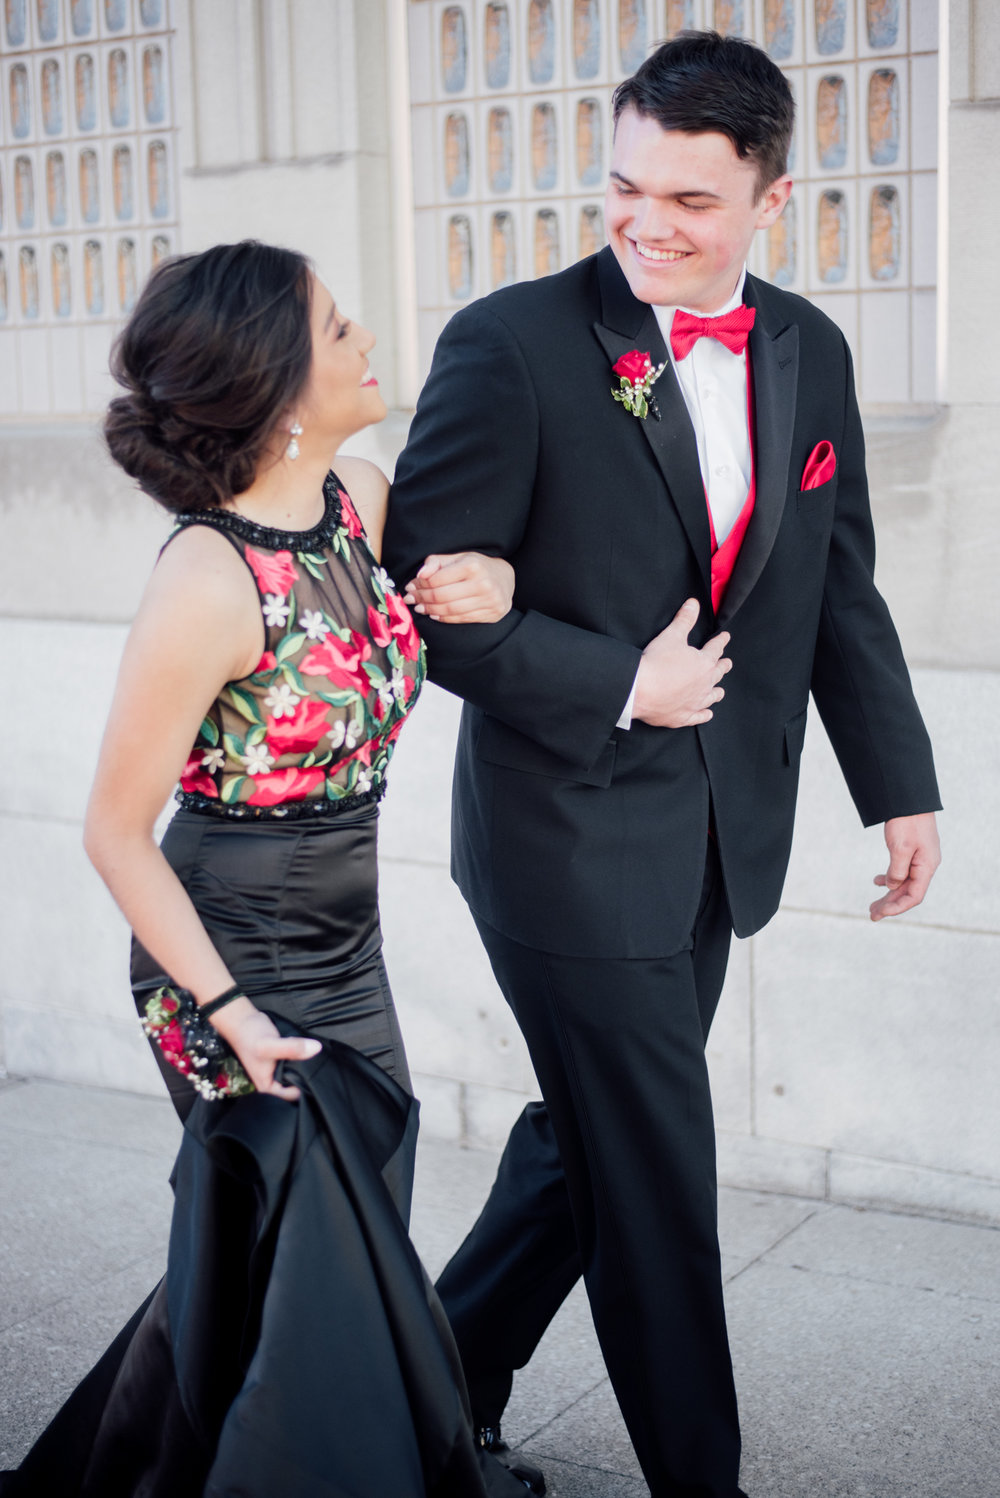 evelyn and quinn muscatine prom pictures-14.jpg